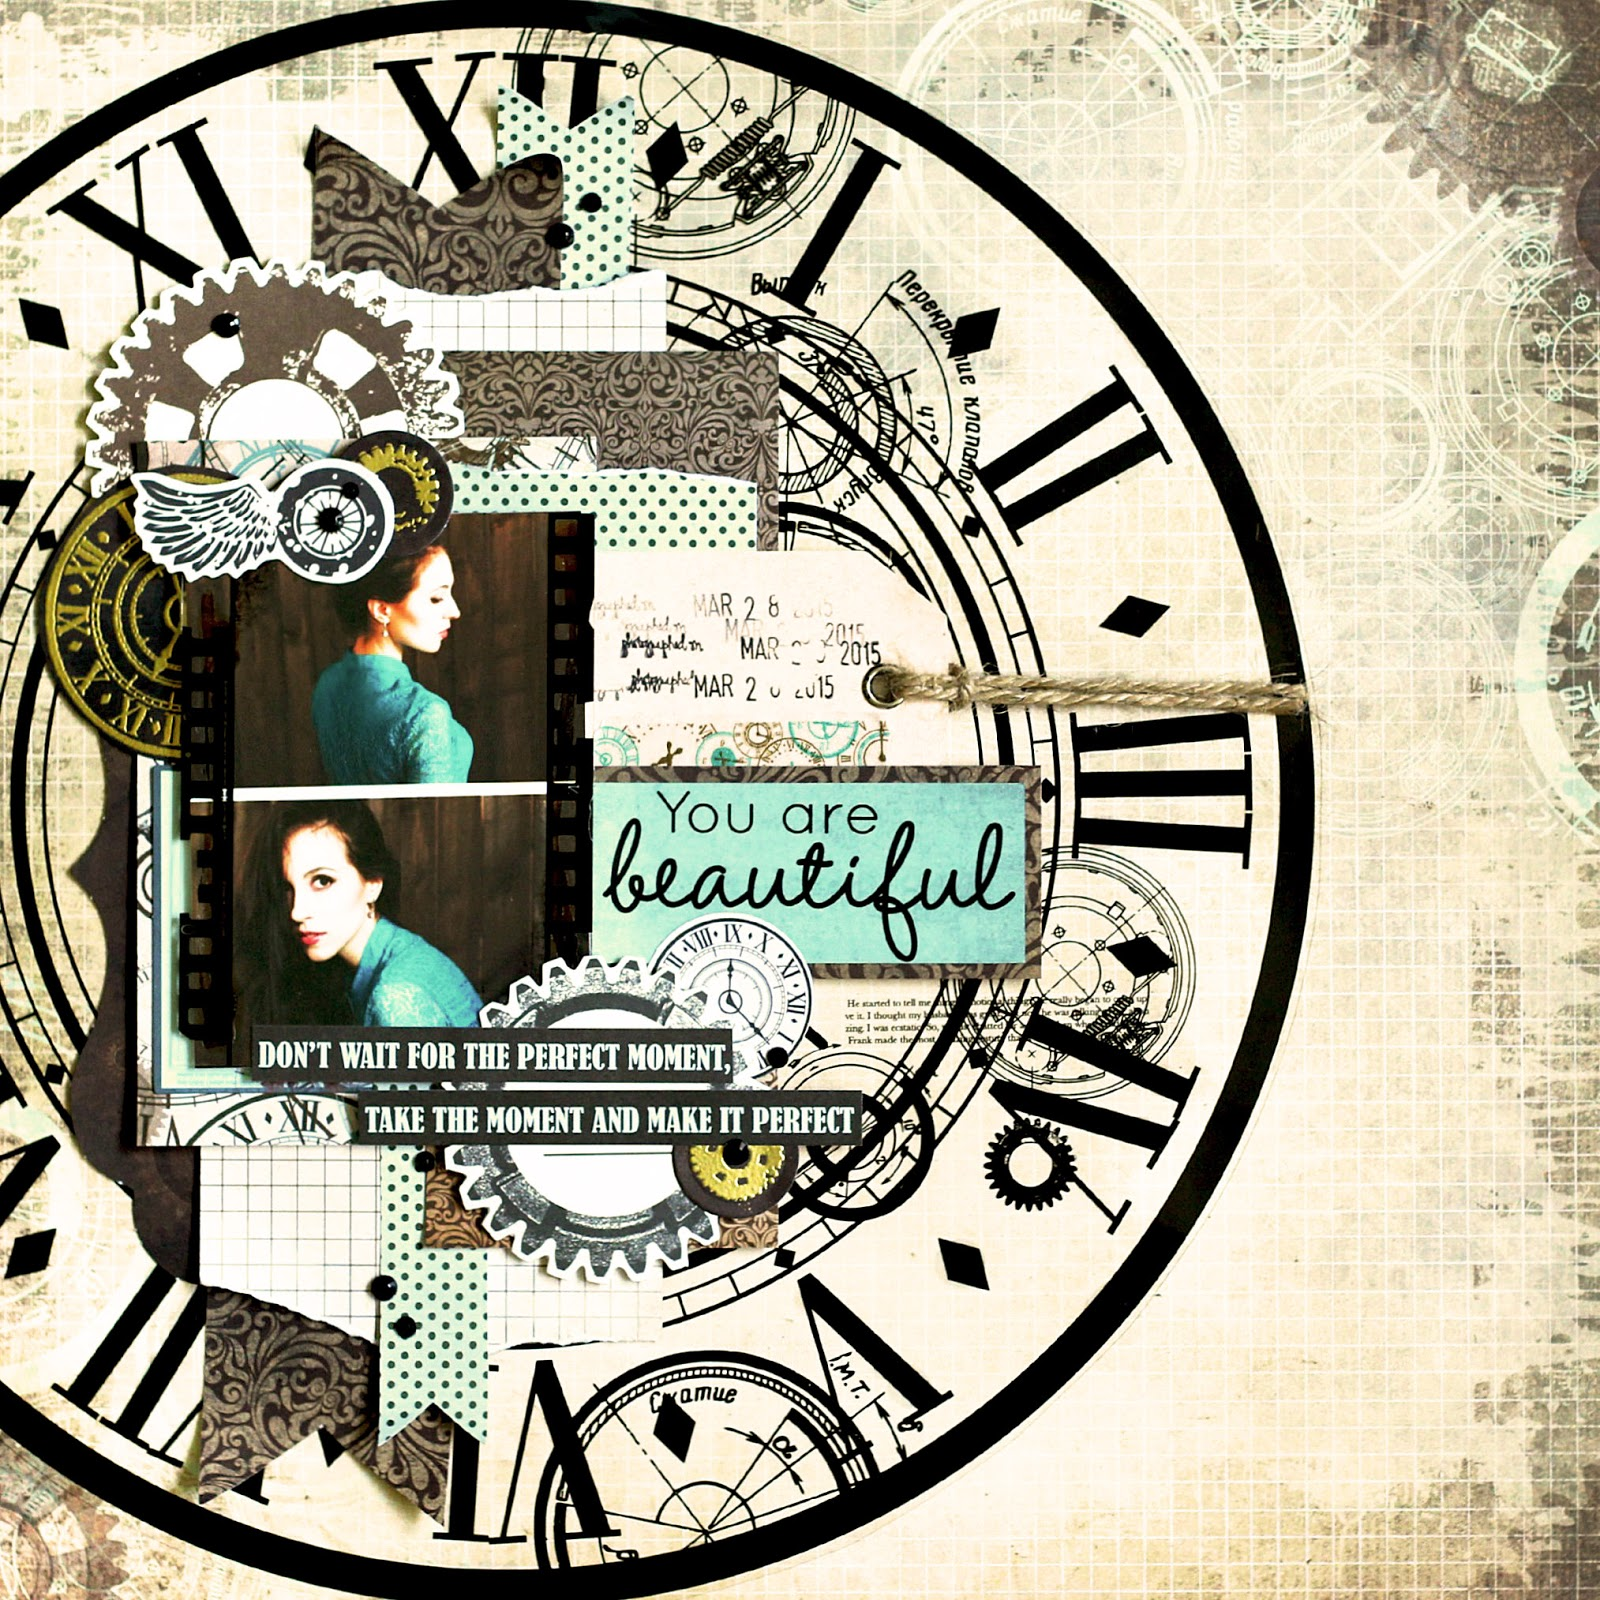 """essay time machine One of the most famous time travelling novels was h g wells' the time machine which was published in 1895 thoughts and ideas of time travelling existed before wells' work, but it was him who formulated the idea of time travelling as using a """"machine."""